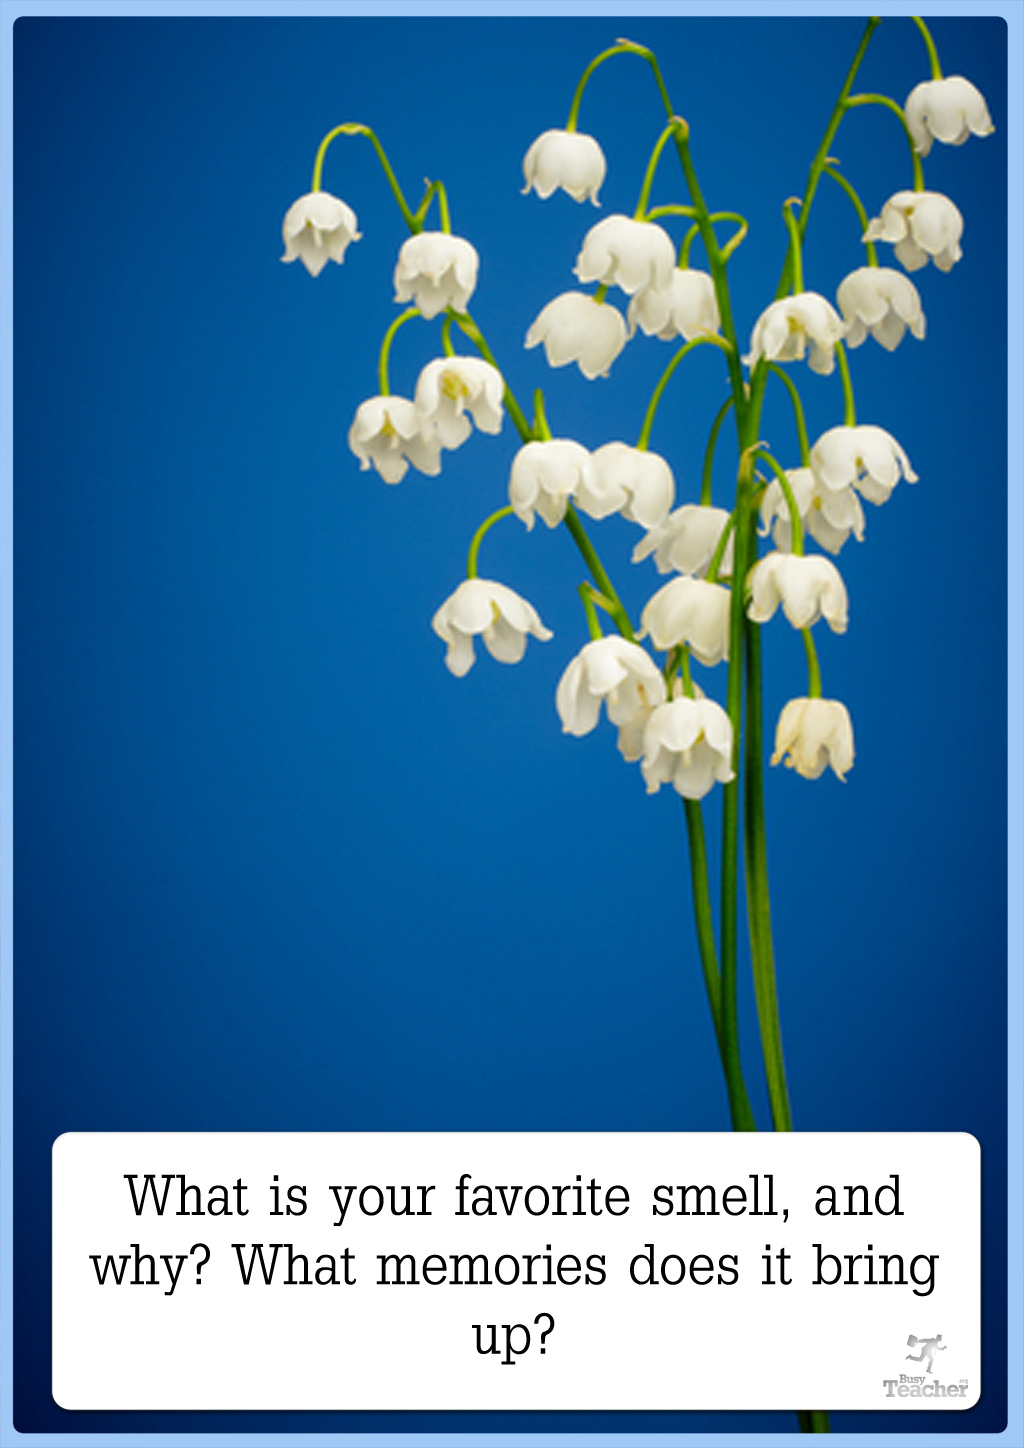 What Is Your Favorite Smell And Why? [CREATIVE WRITING PROMPT]